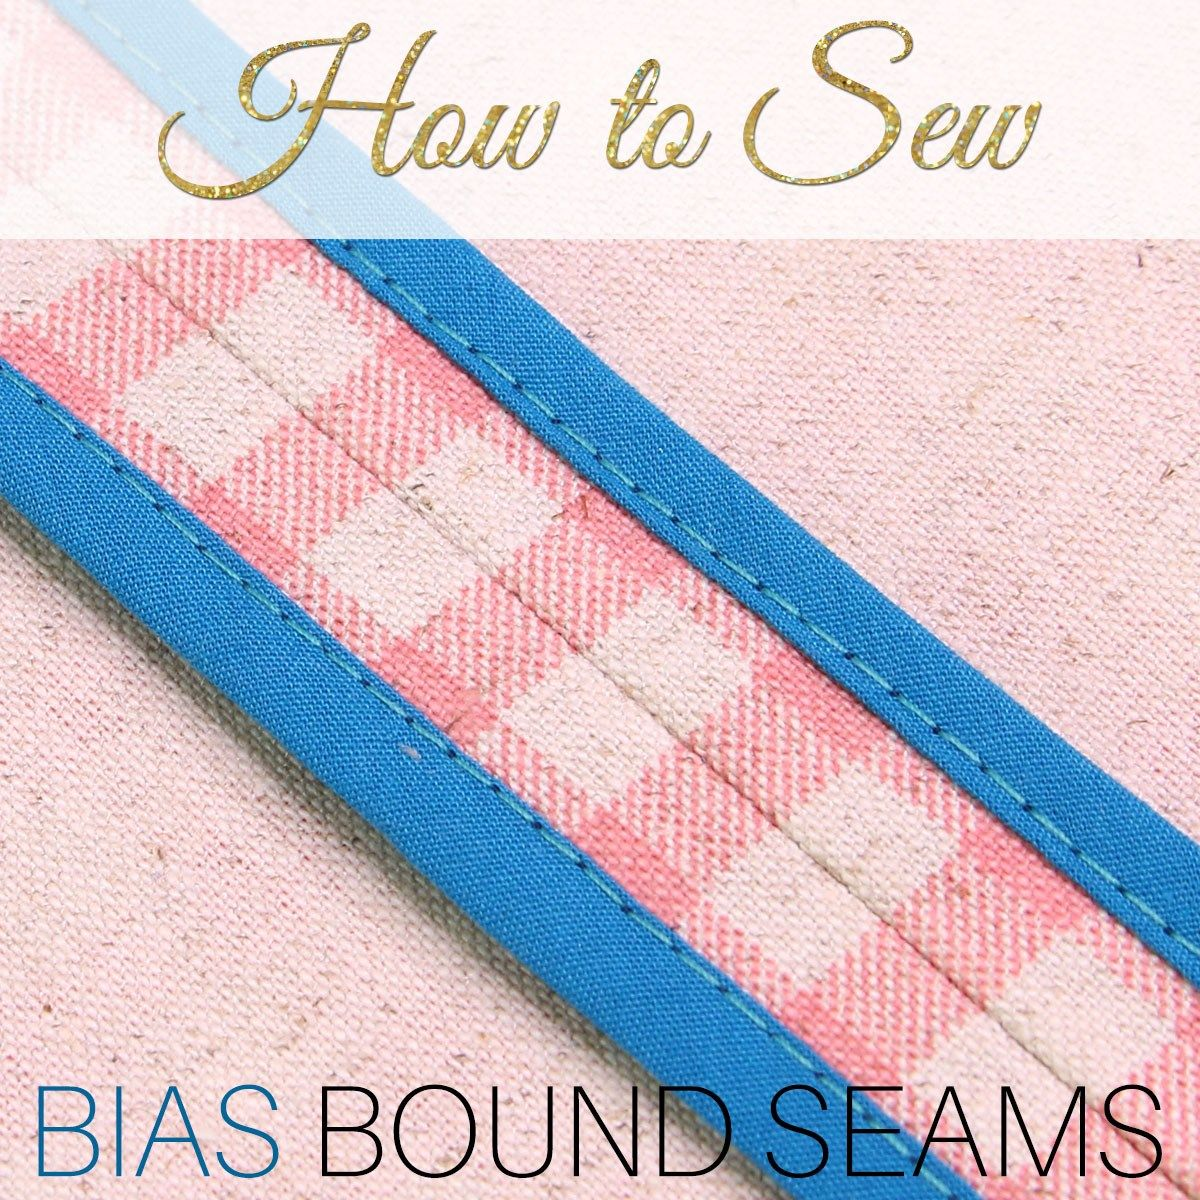 Bias Bound Seam: Binding Seams In 3 Steps